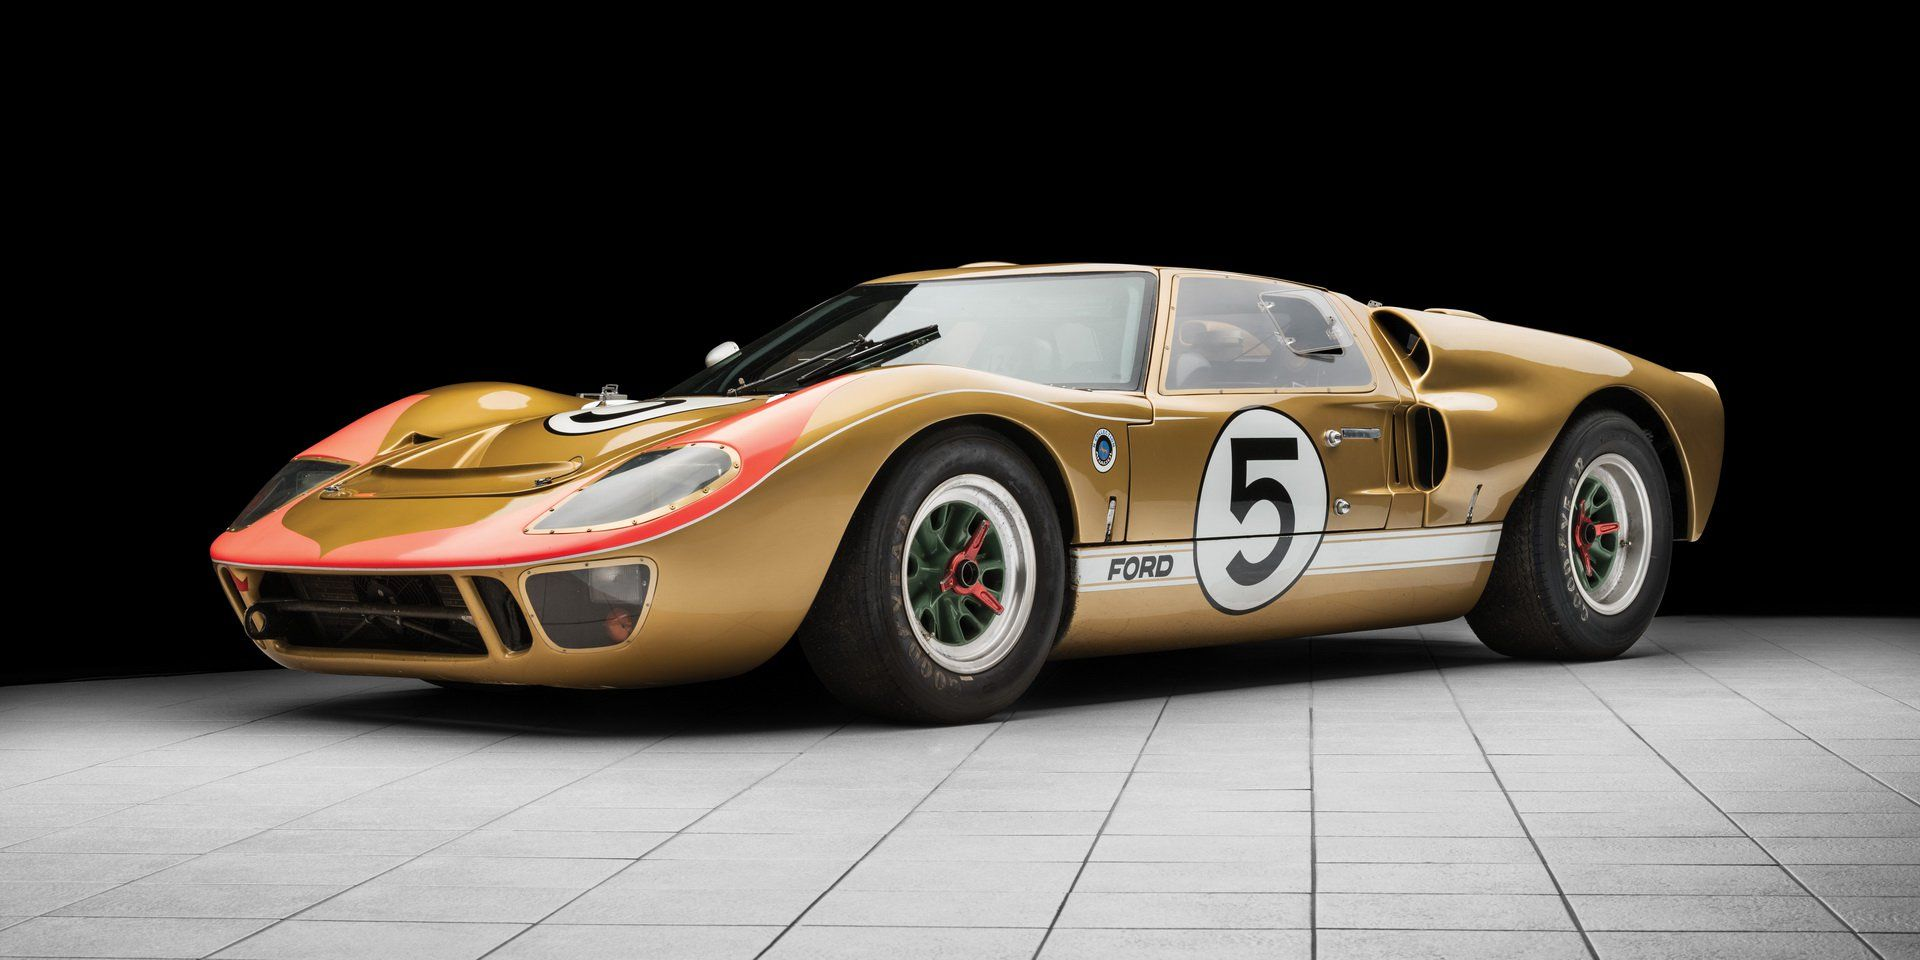 Original Le Mans Conquering 1966 Ford Gt40 Goes Under The Hammer